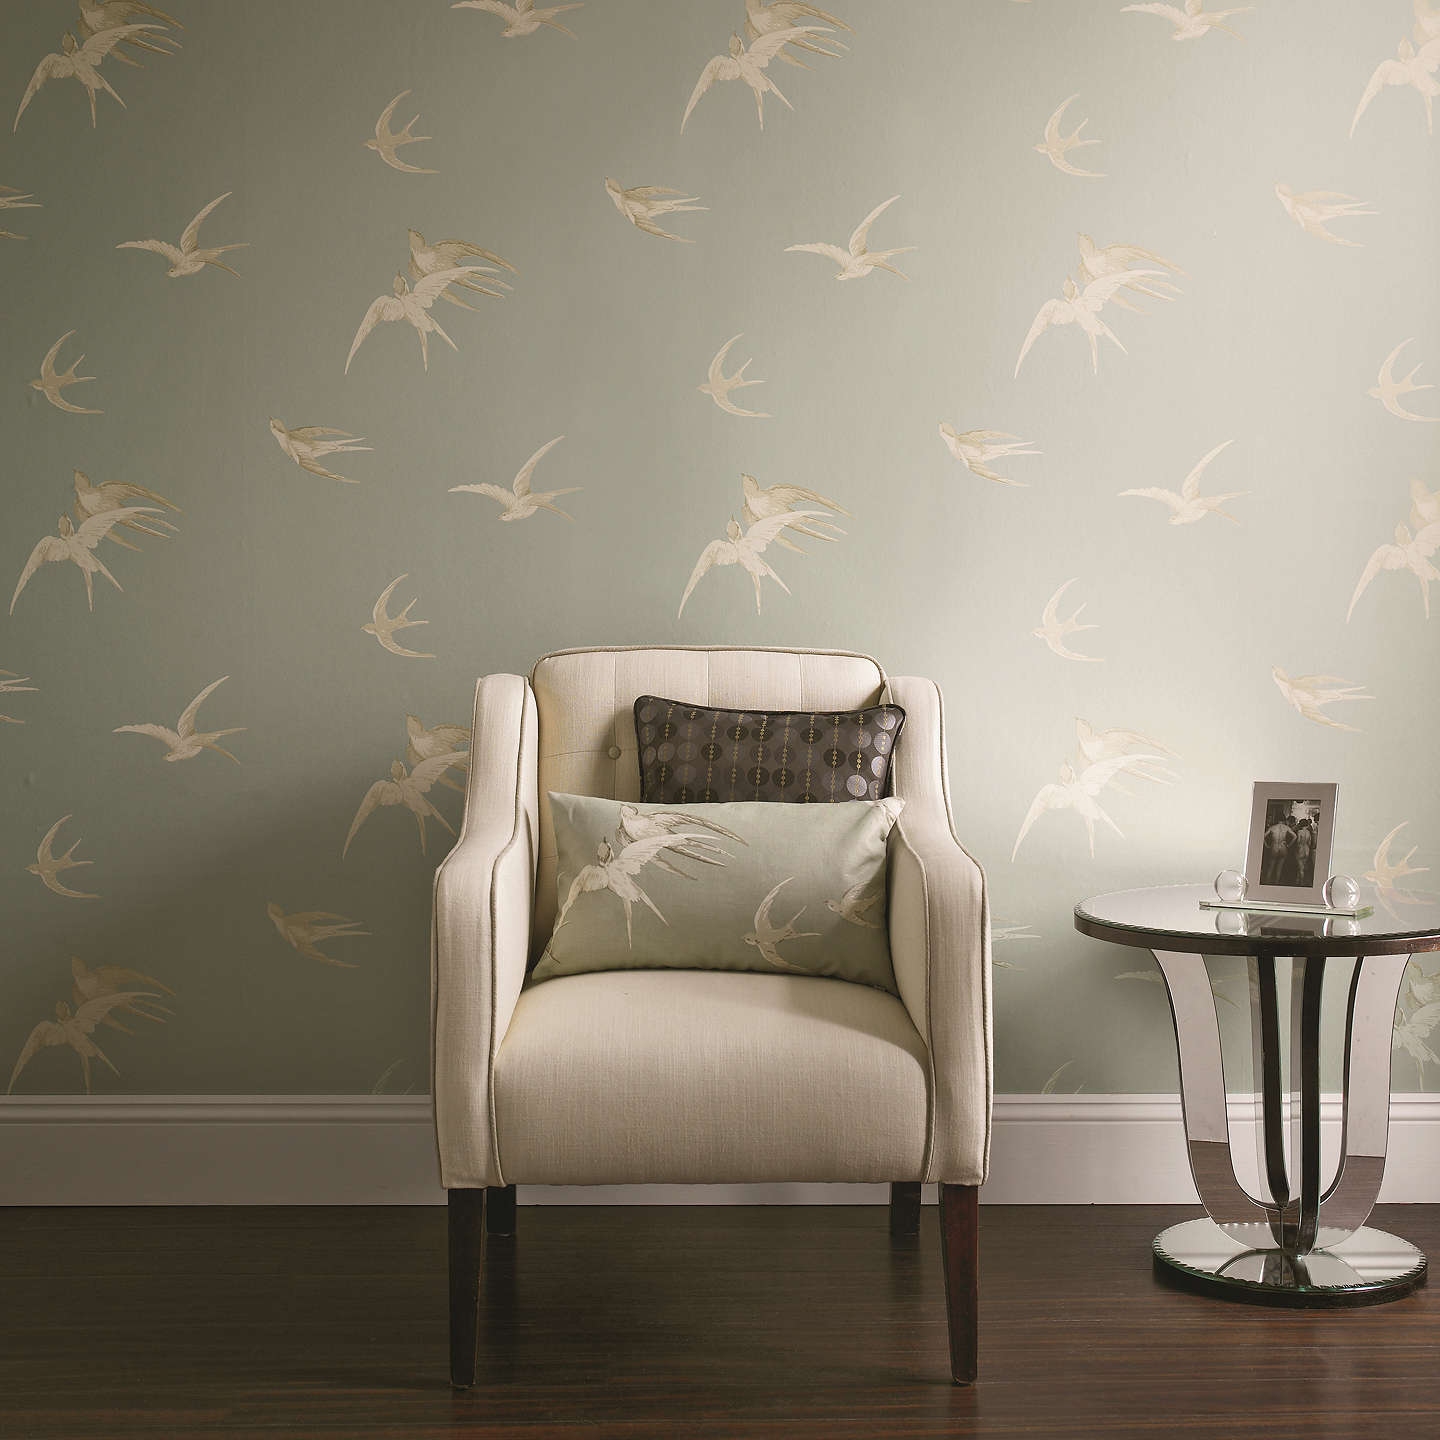 BuySanderson Swallows Wallpaper, Silver, DVIWSW104 Online at johnlewis.com